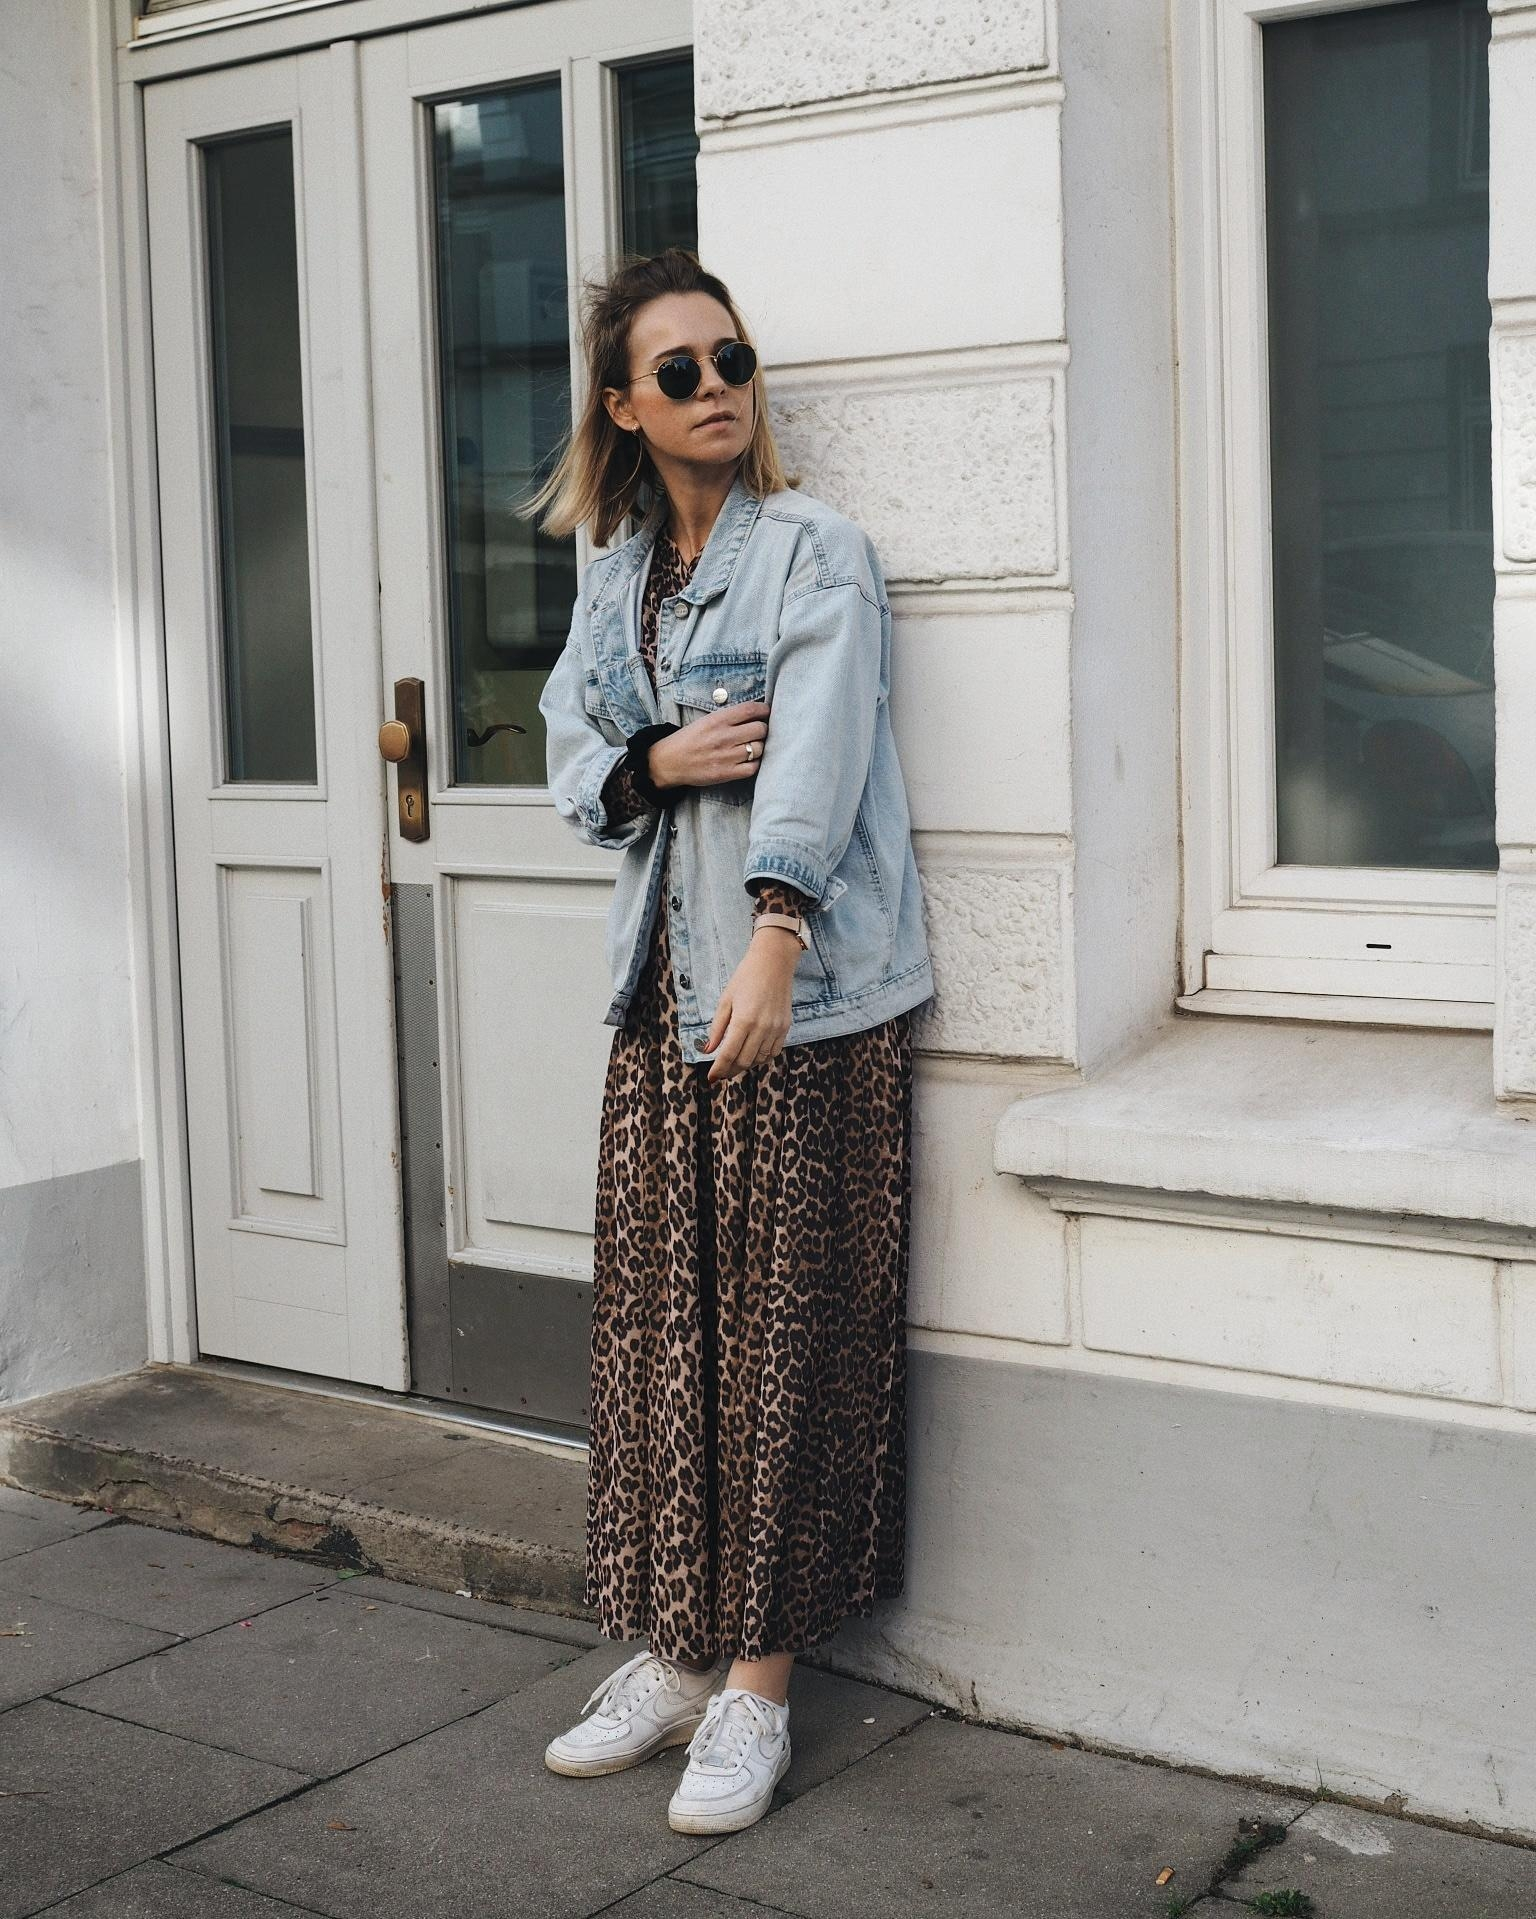 Leo love  fashion streetfashion streetstyle outfit leolove leodress fashioncrush  fb253592 d05f 449f b06e 18a34ea23a89